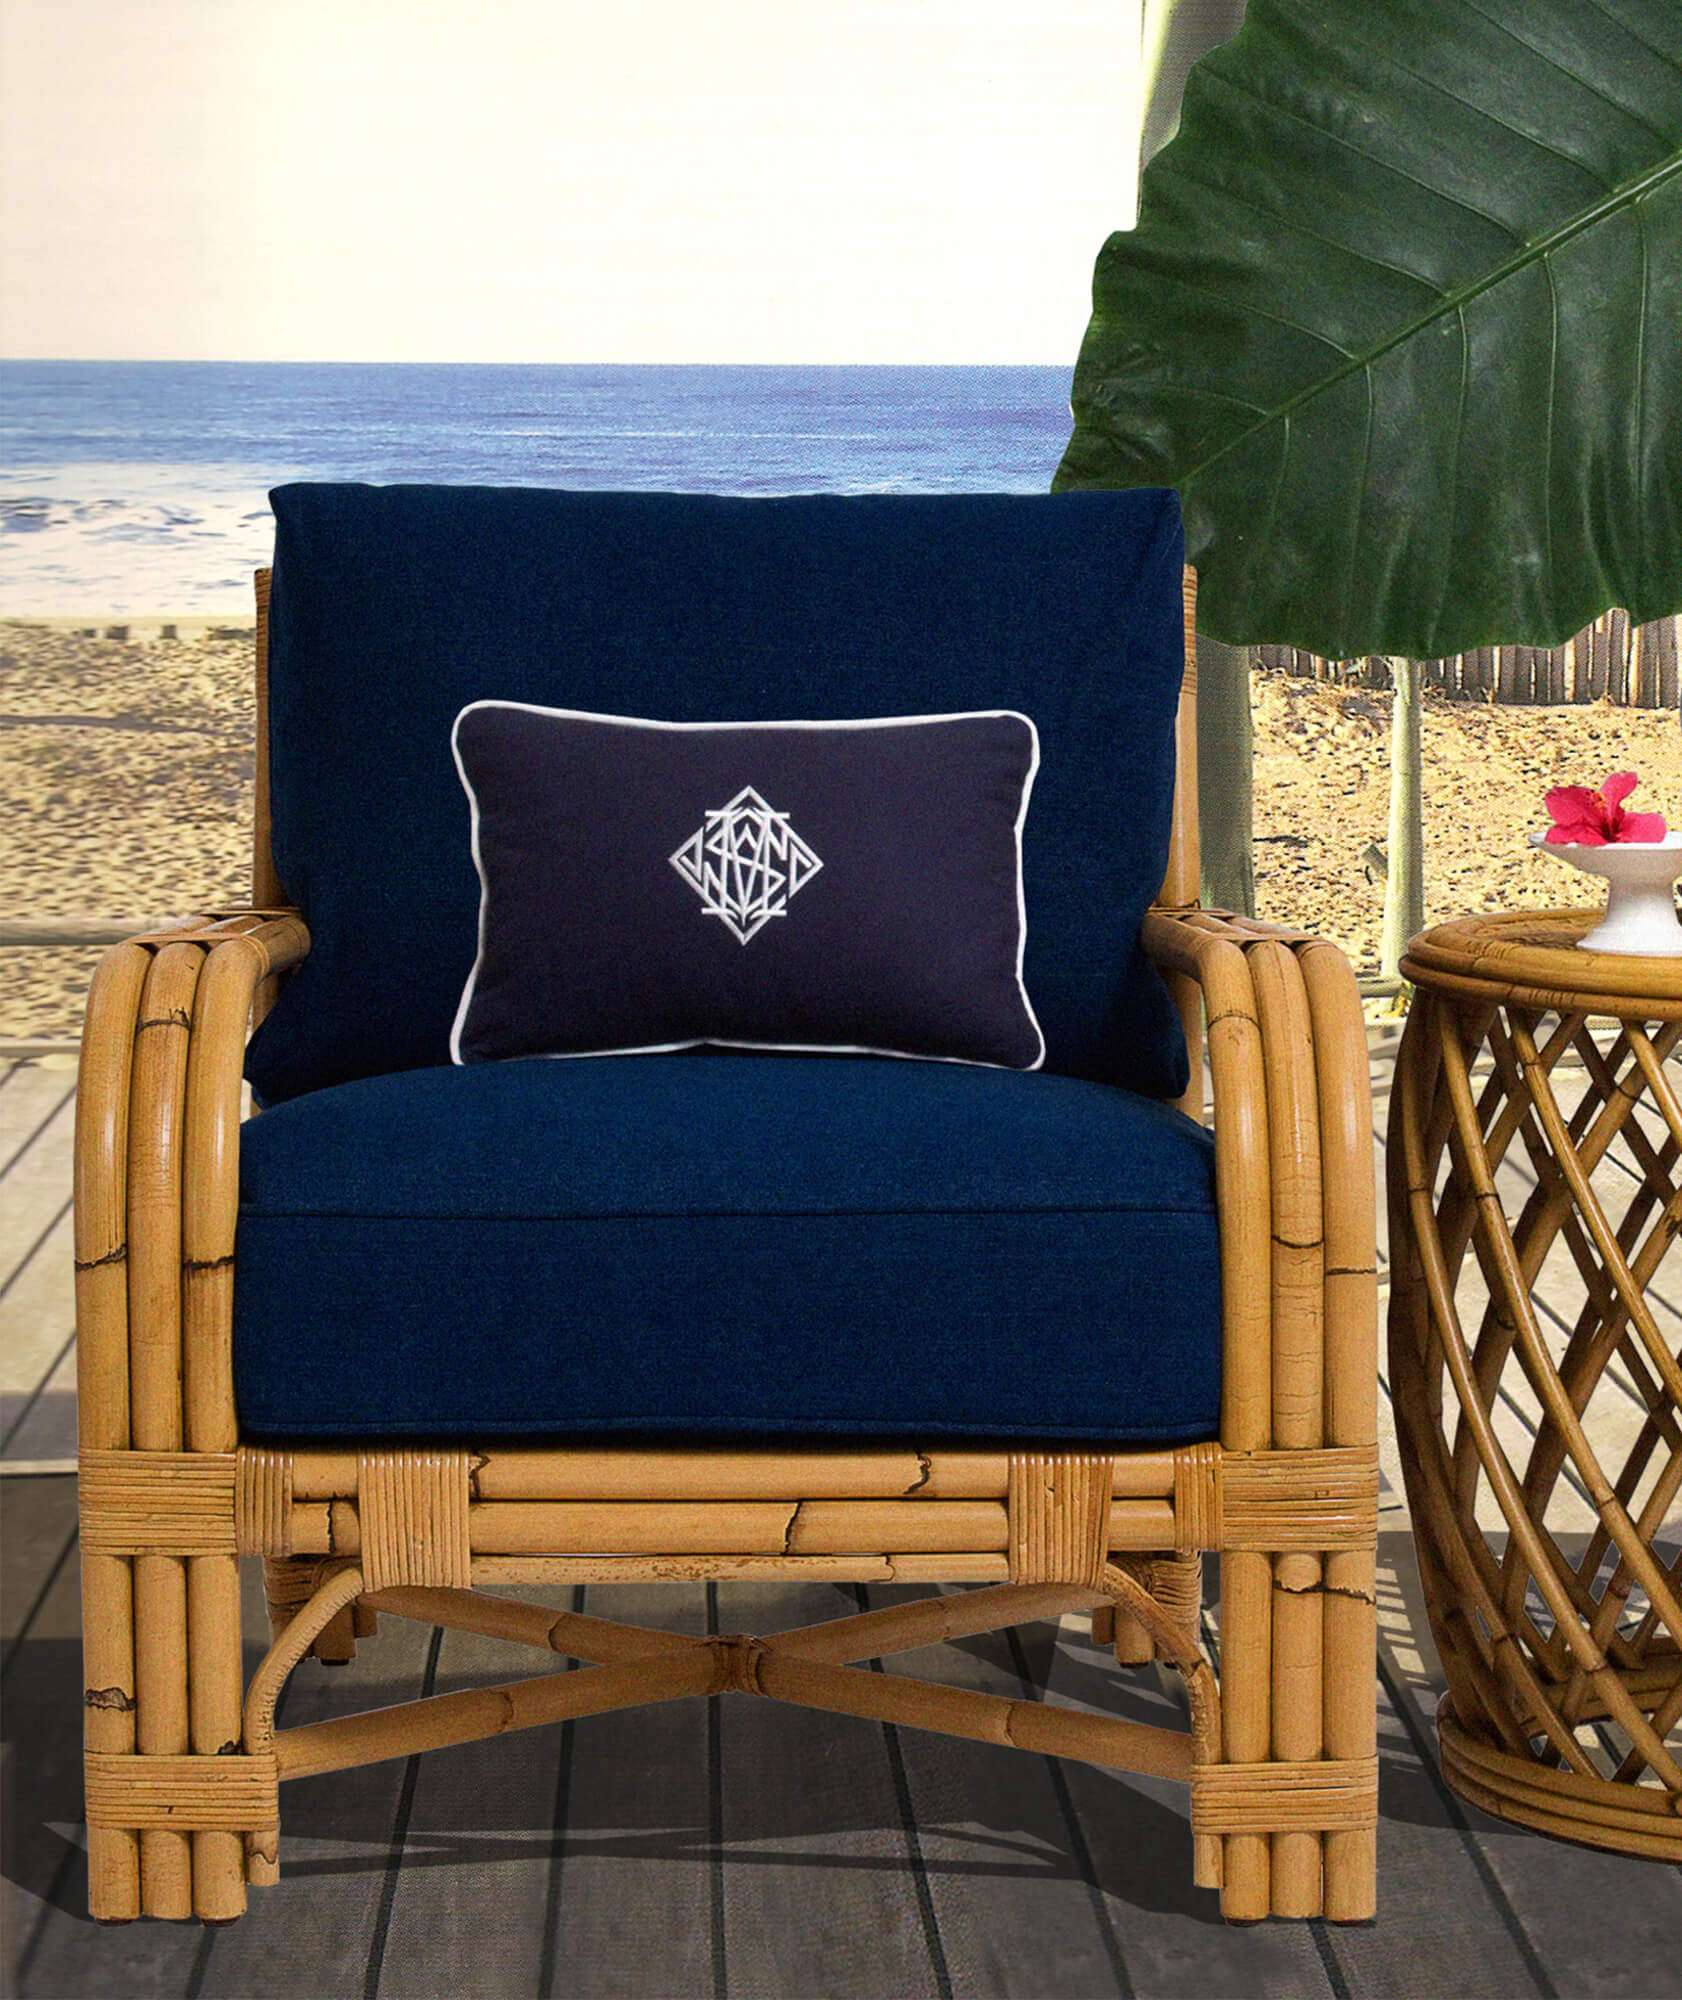 rattan furniture, rattan chair, monogram pillow, monogram cushion, navy and white